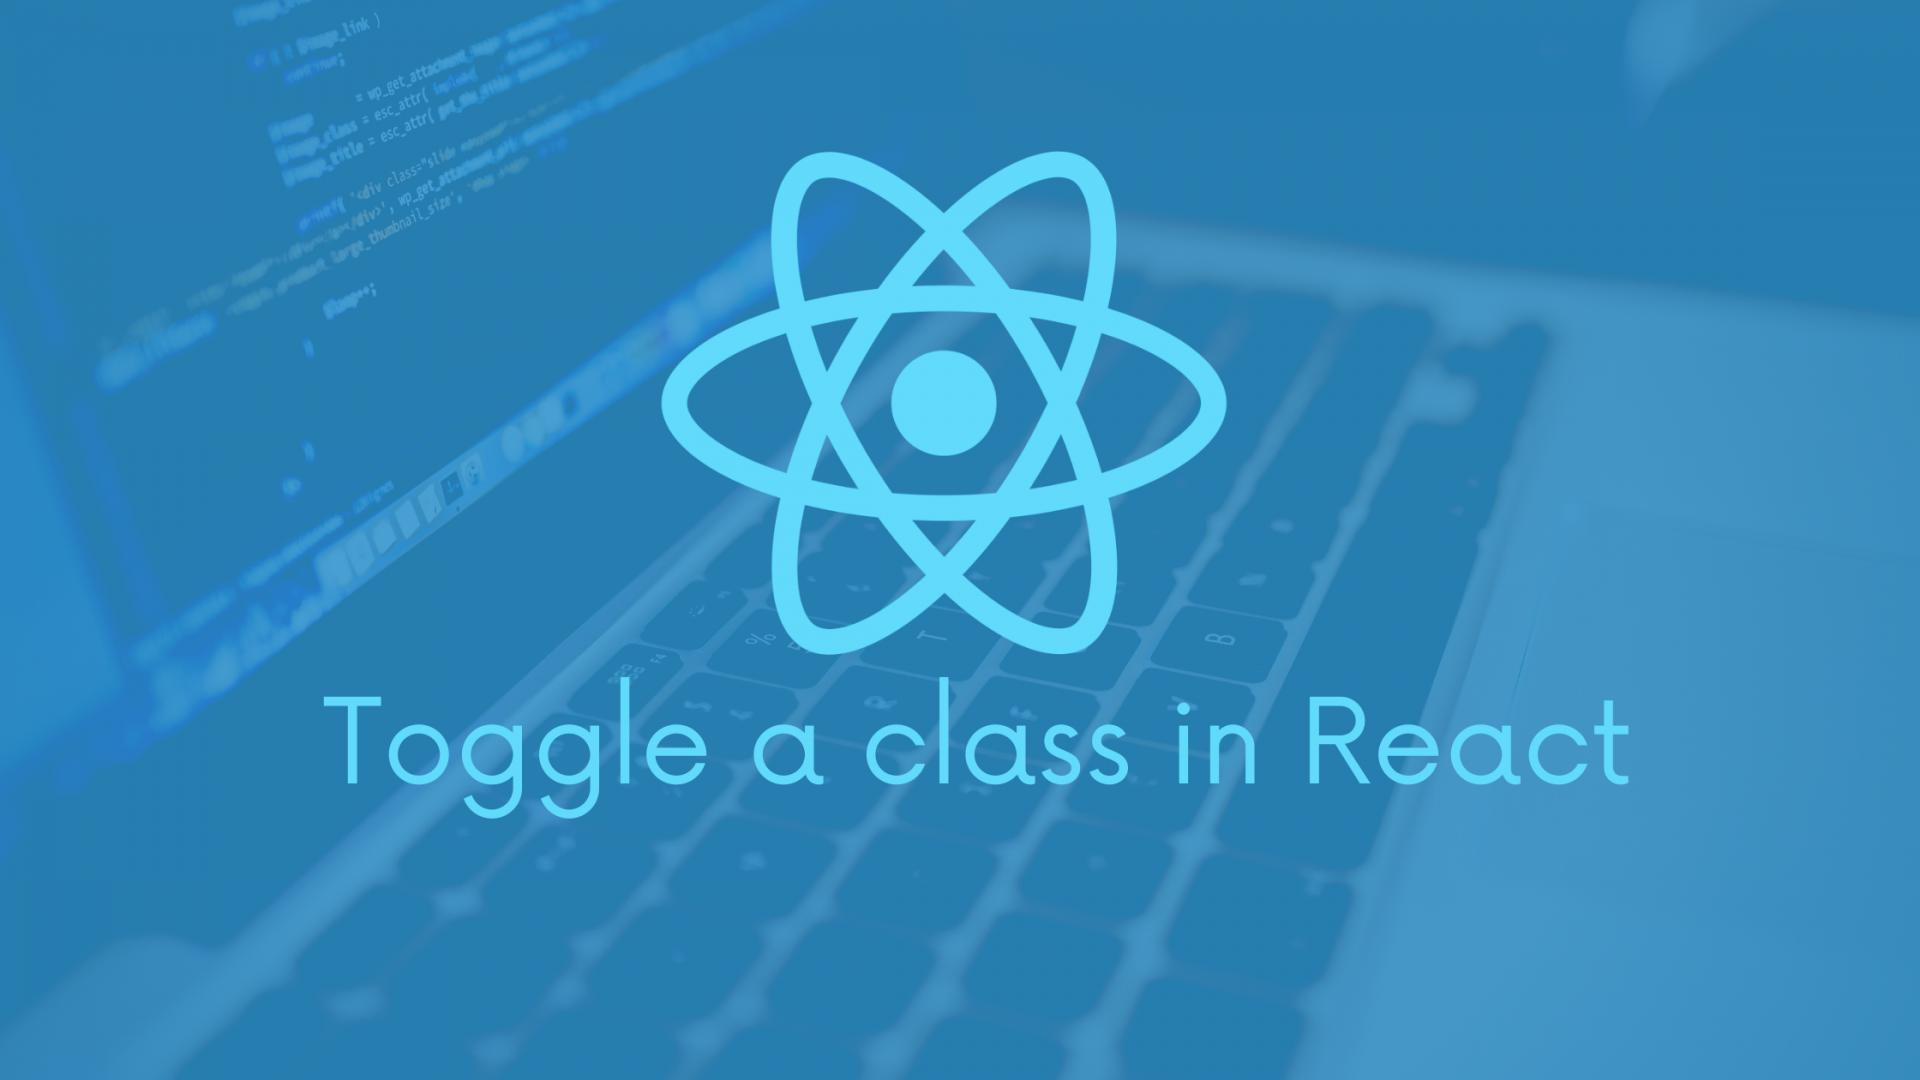 3 ways for toggle a class in React